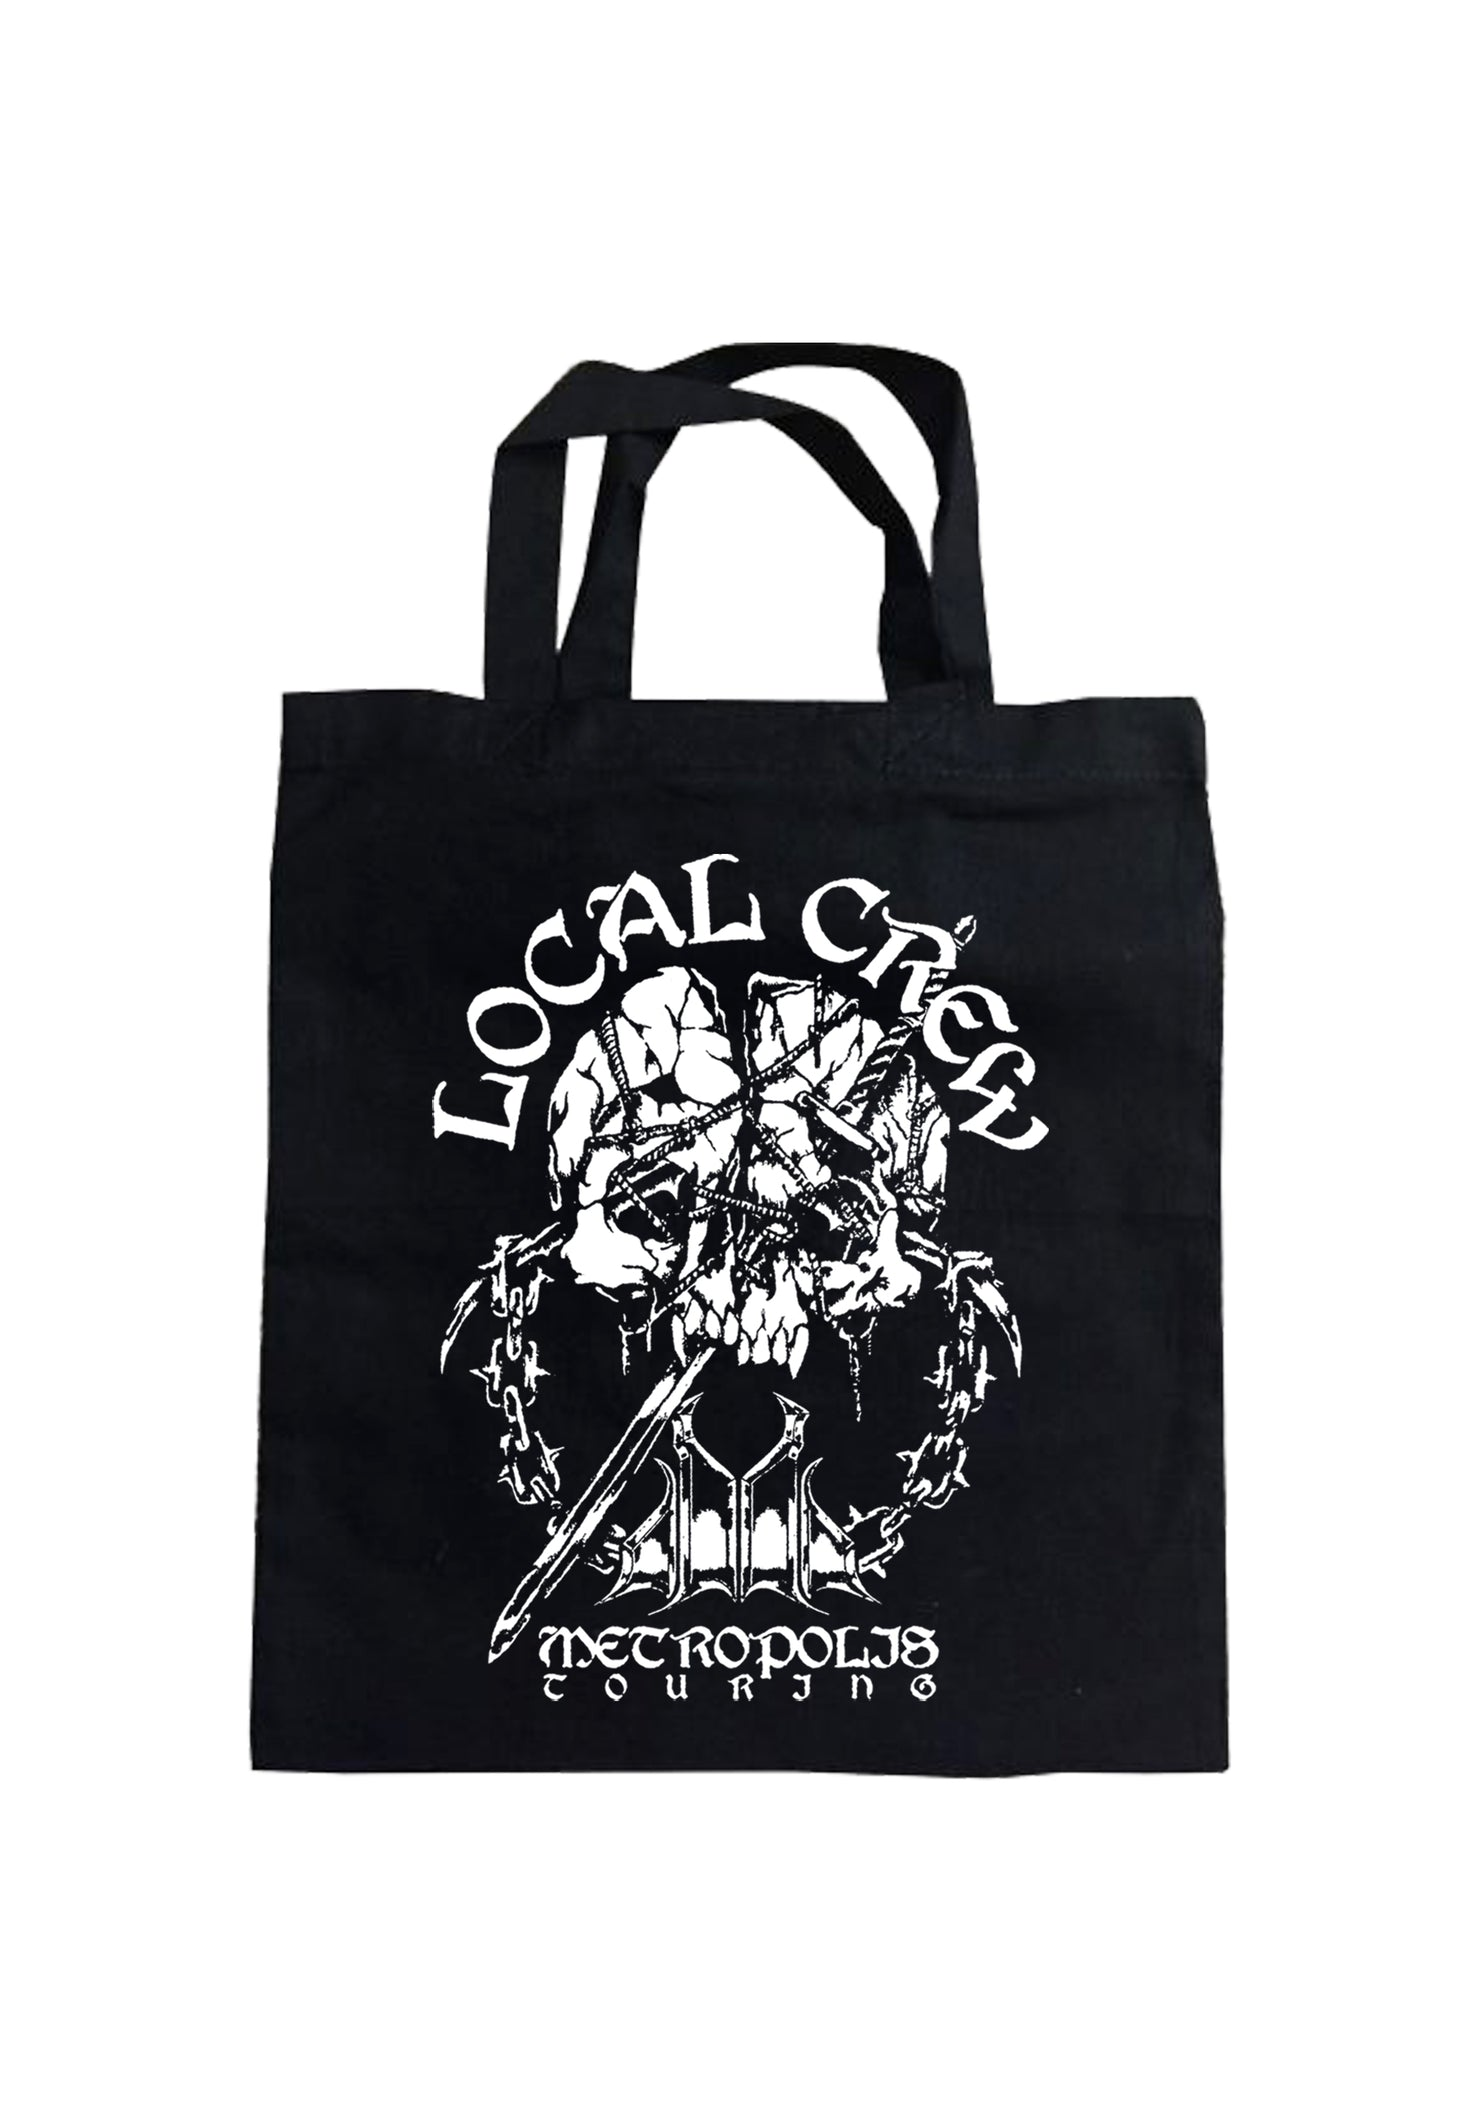 Image shows printed side of Tote Bag featuring Local Crew Illustration by Baker.